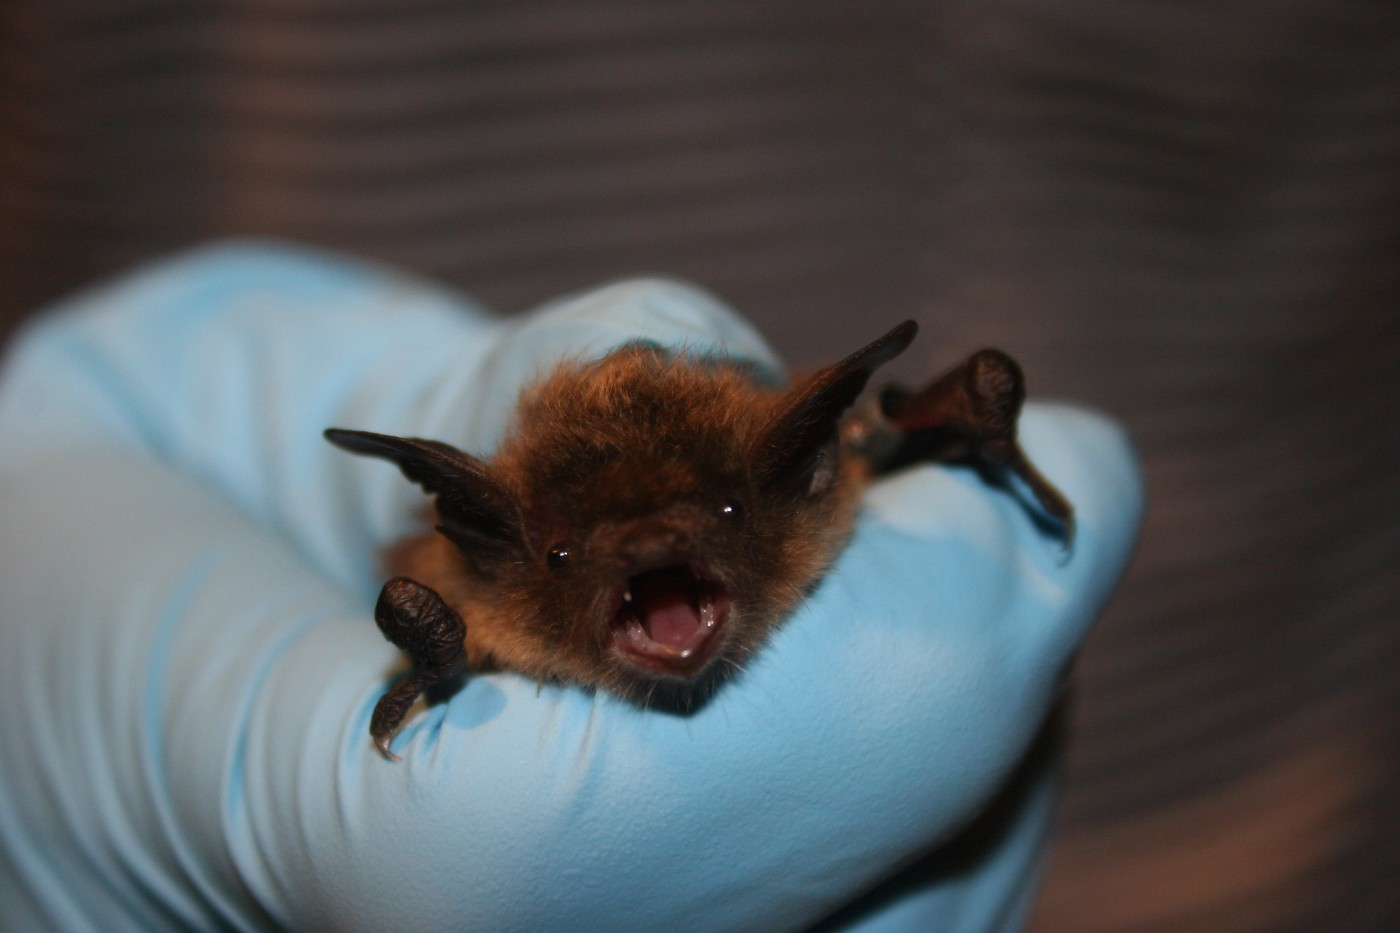 A small brown bat looks at the camera while a person wearing gloves holds it up